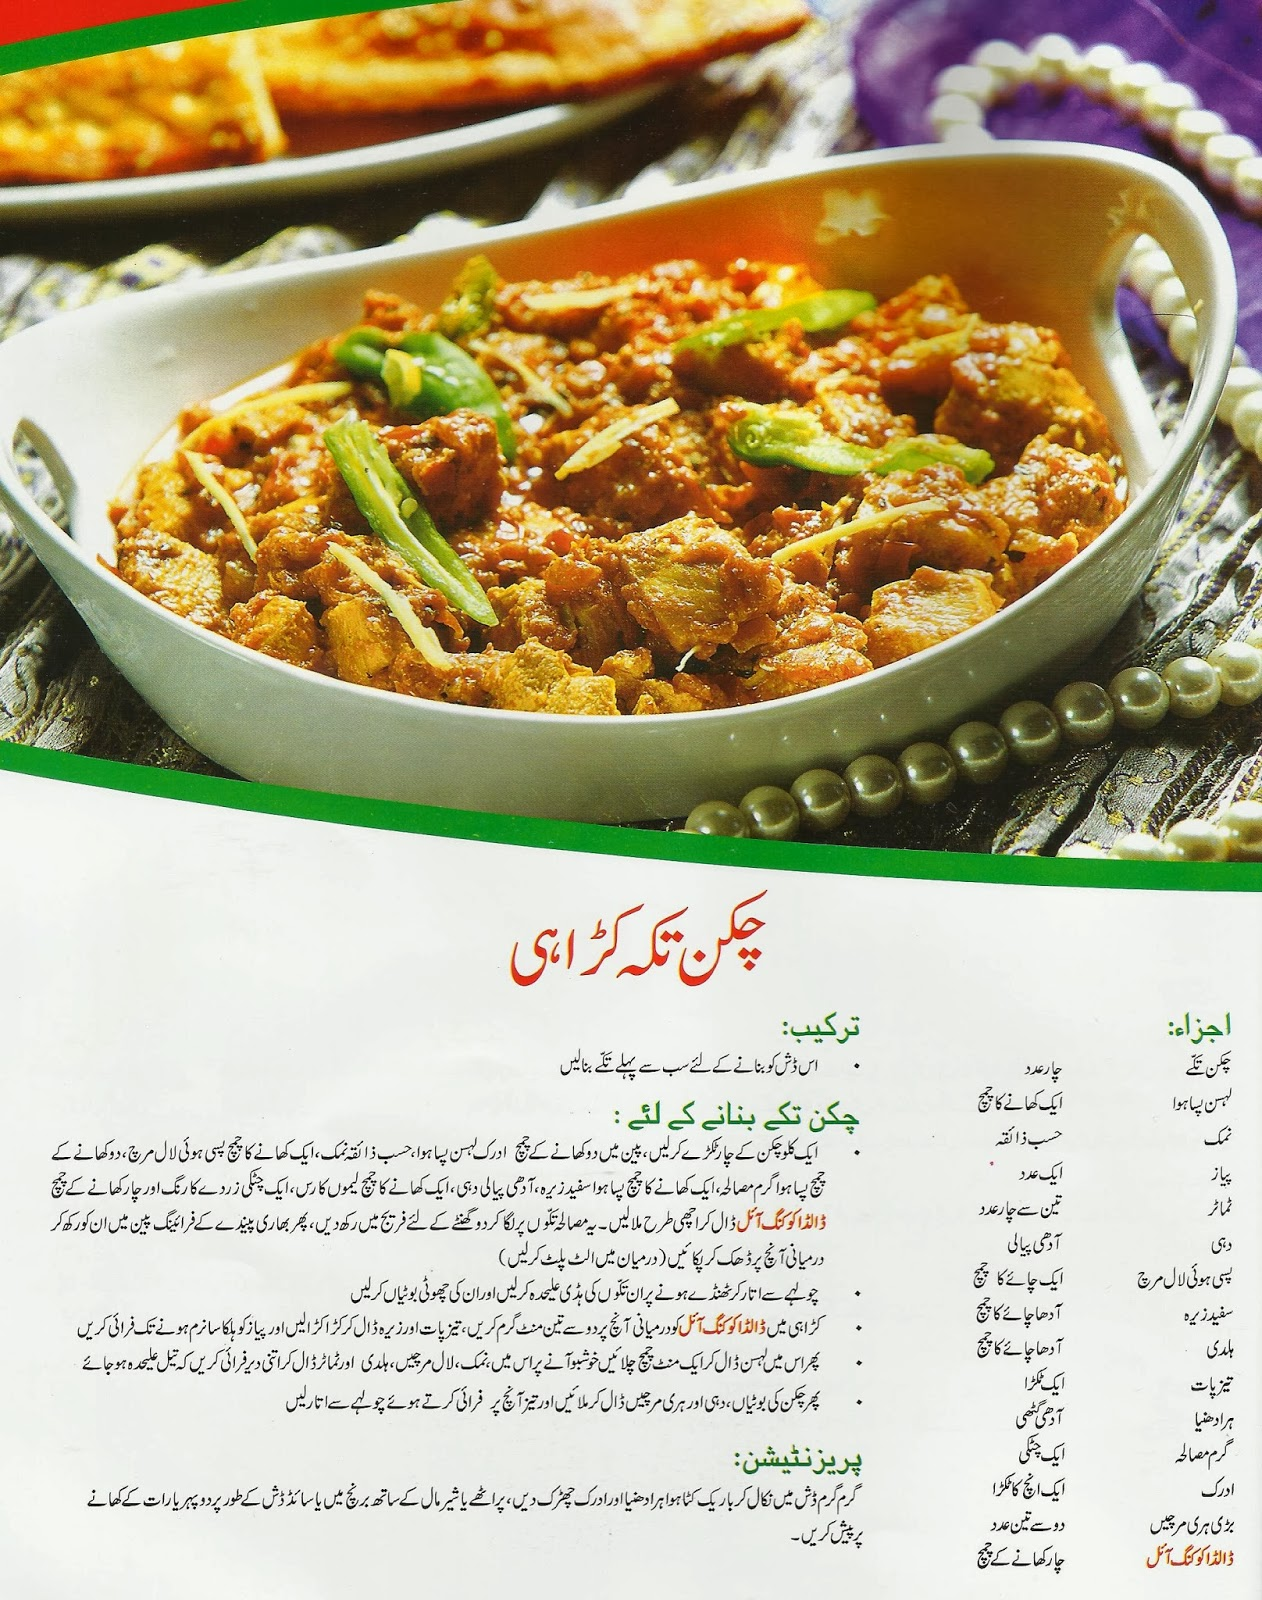 A New Pakistani Cooking Dish Chicken Tikka Karahi Recipe In Urdu